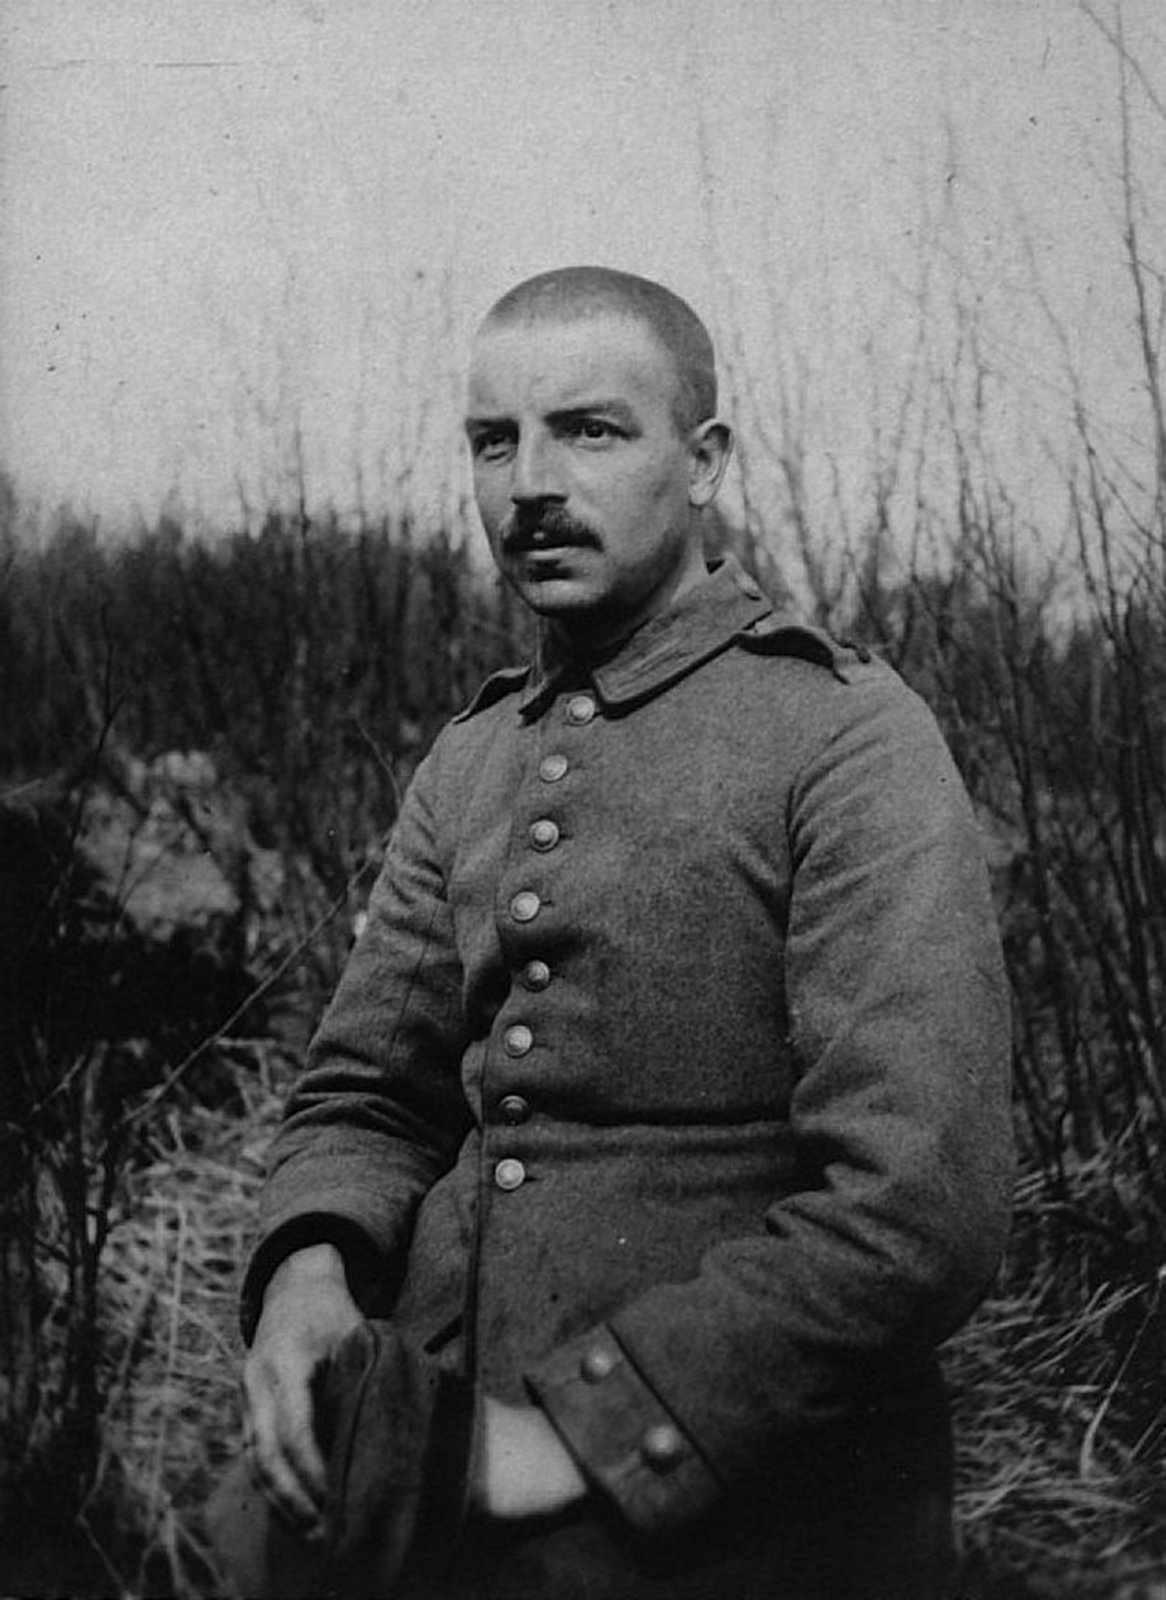 Reinhold Sieglerschmidt in uniform, Daugavpils (Dvinsk), now in Lithuania., Europeana 1914-1918 / Jörn Sieglerschmidt, CC BY-SA